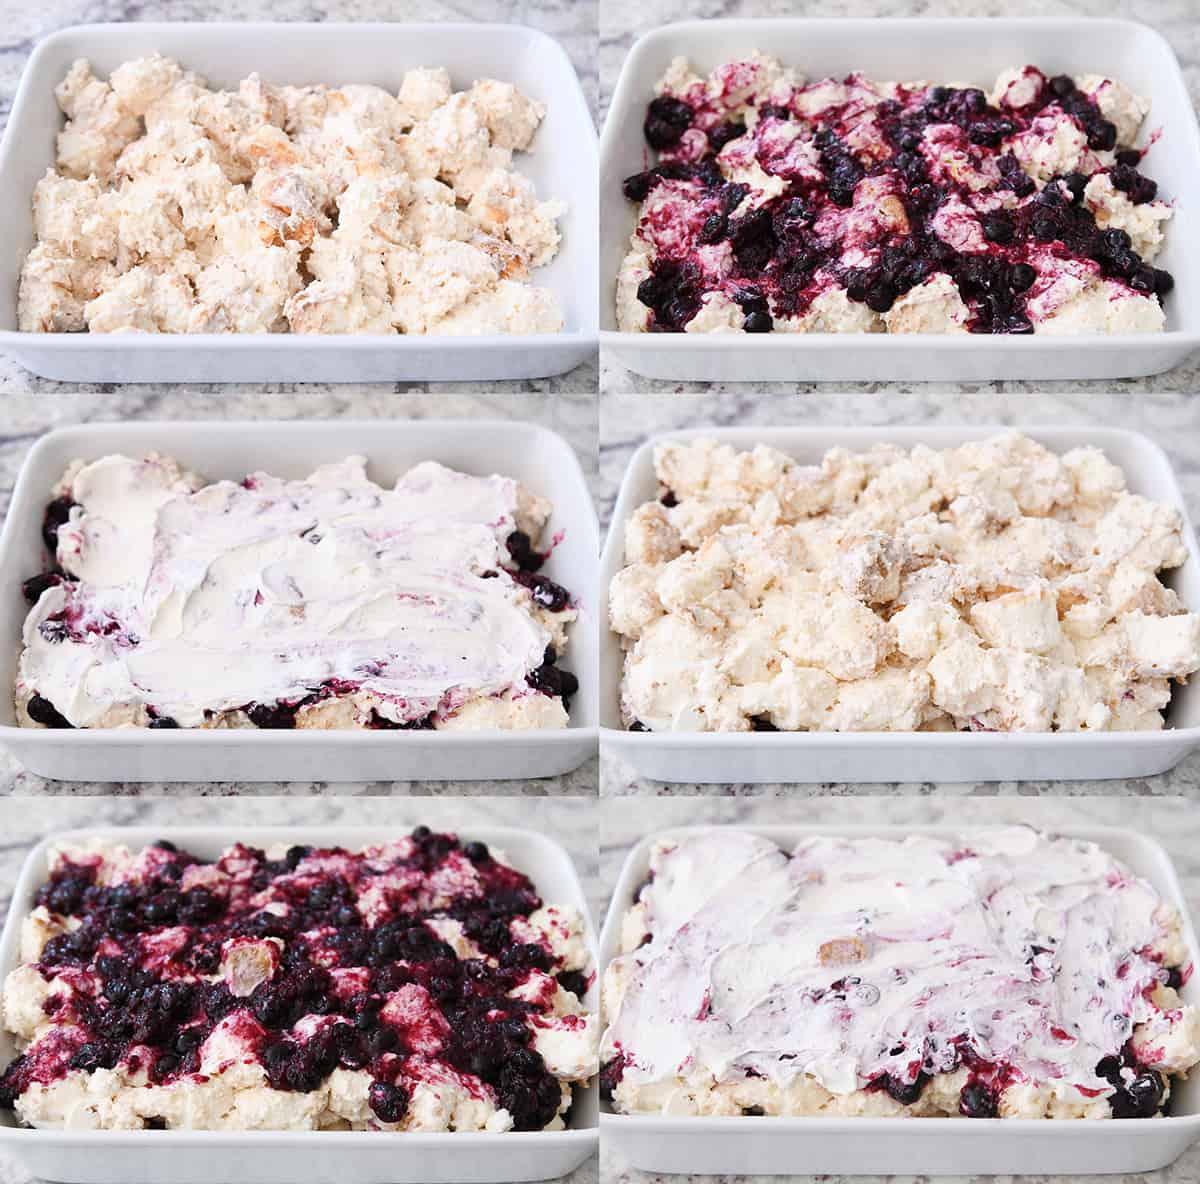 Step by step assembly of heavenly blueberries and cream angel food cake dessert.